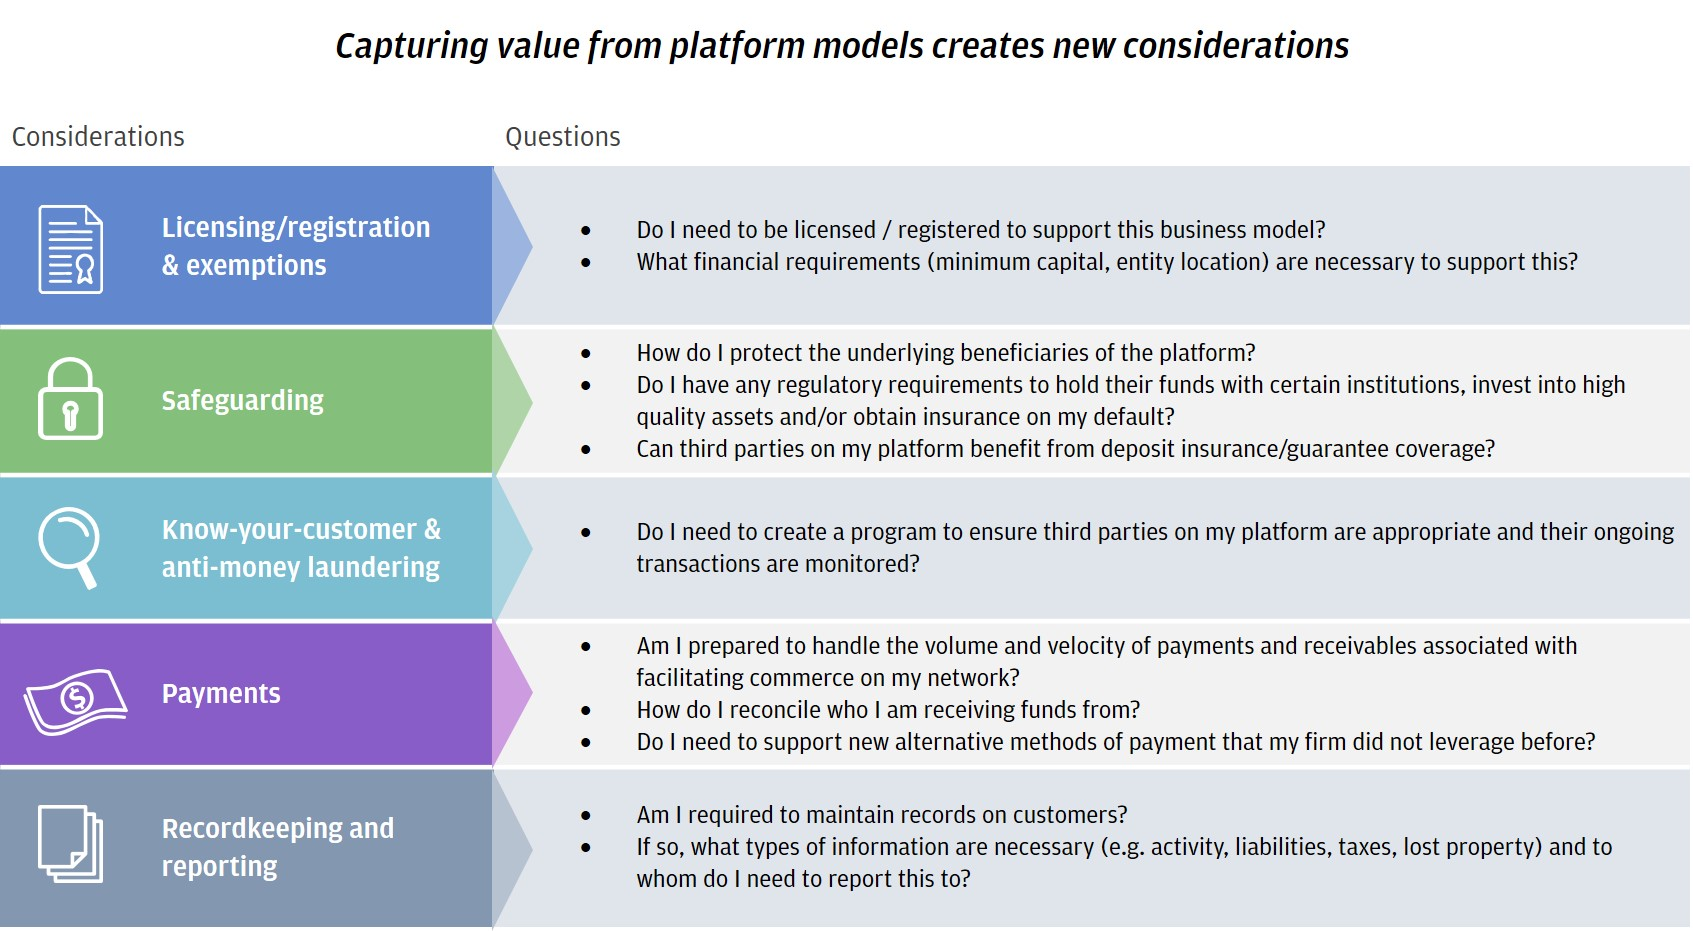 RISE PLATFORMS Exhibit 3 - Capturing value from platform models creates new considerations